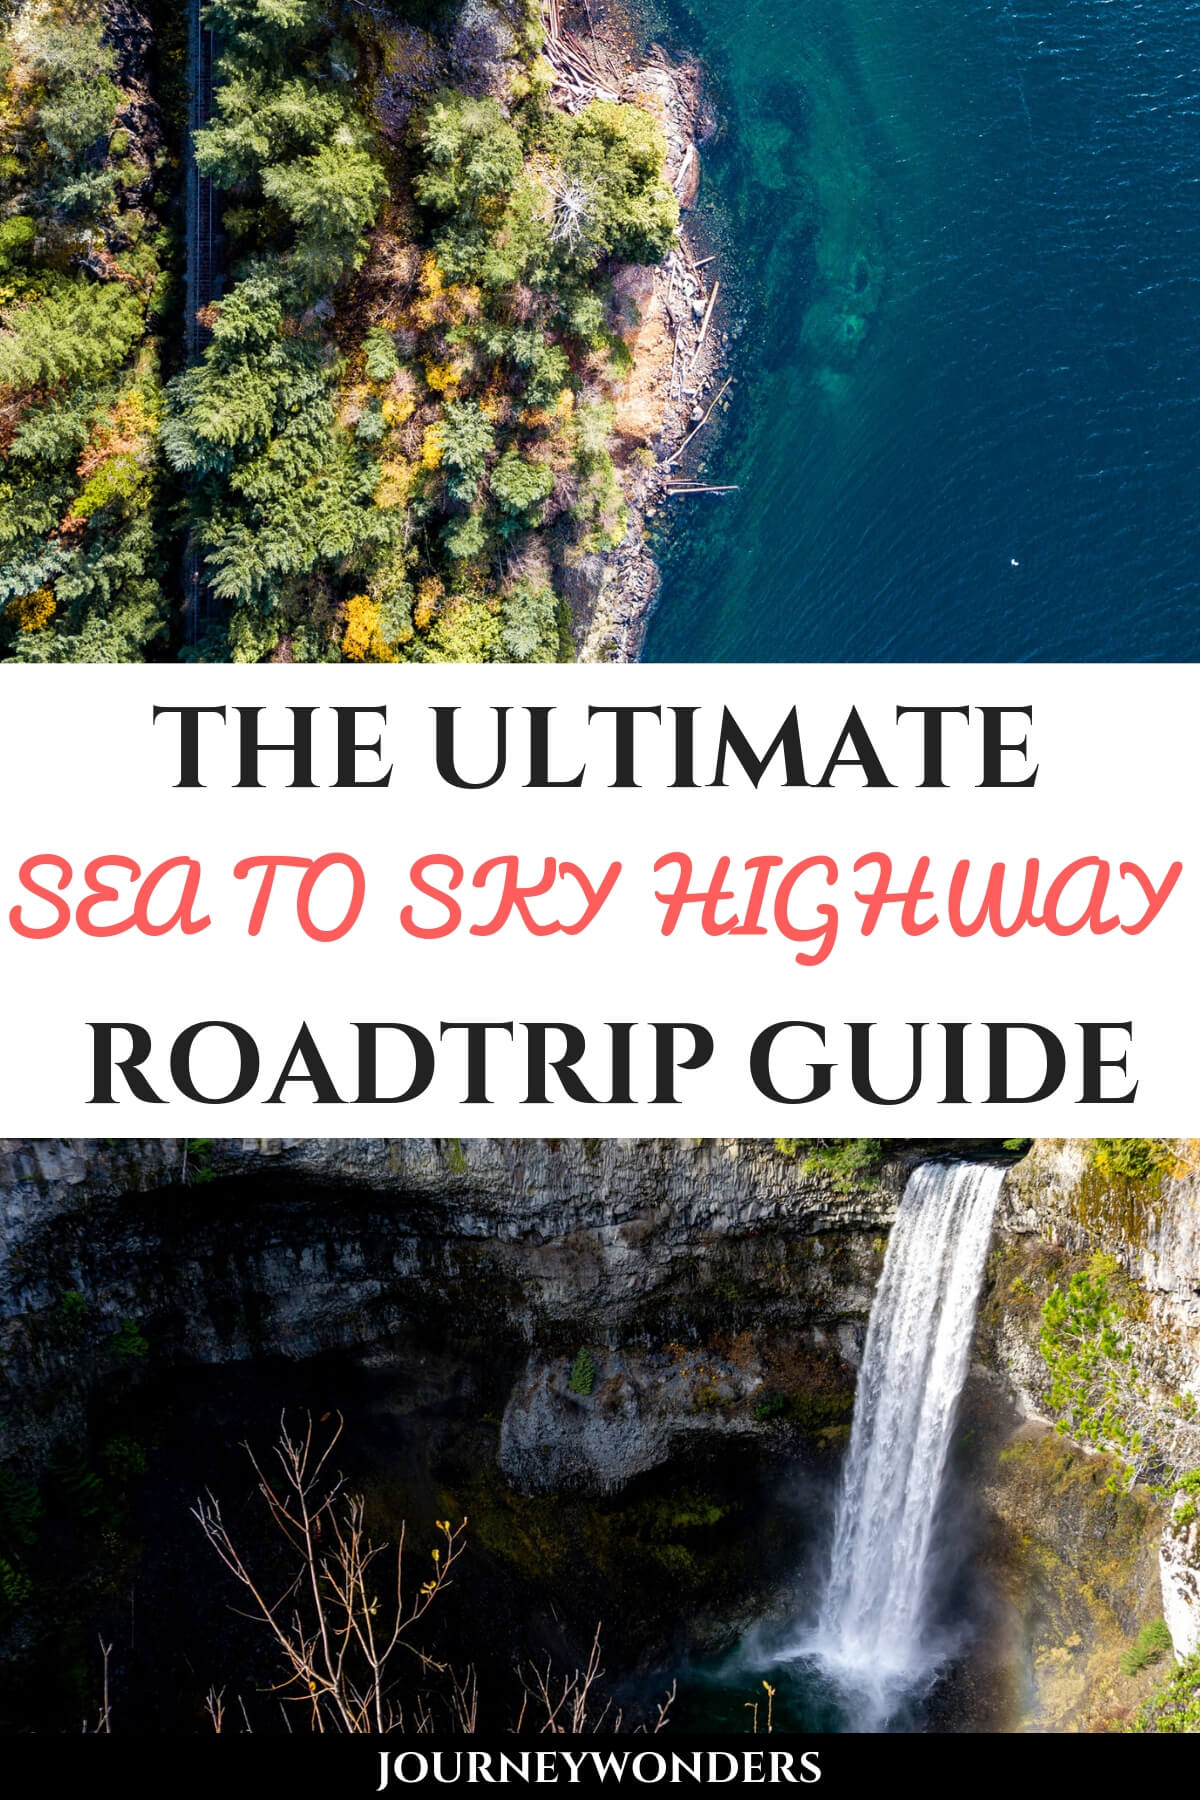 The Ultimate Sea to Sky Highway during Winter Roadtrip Guide